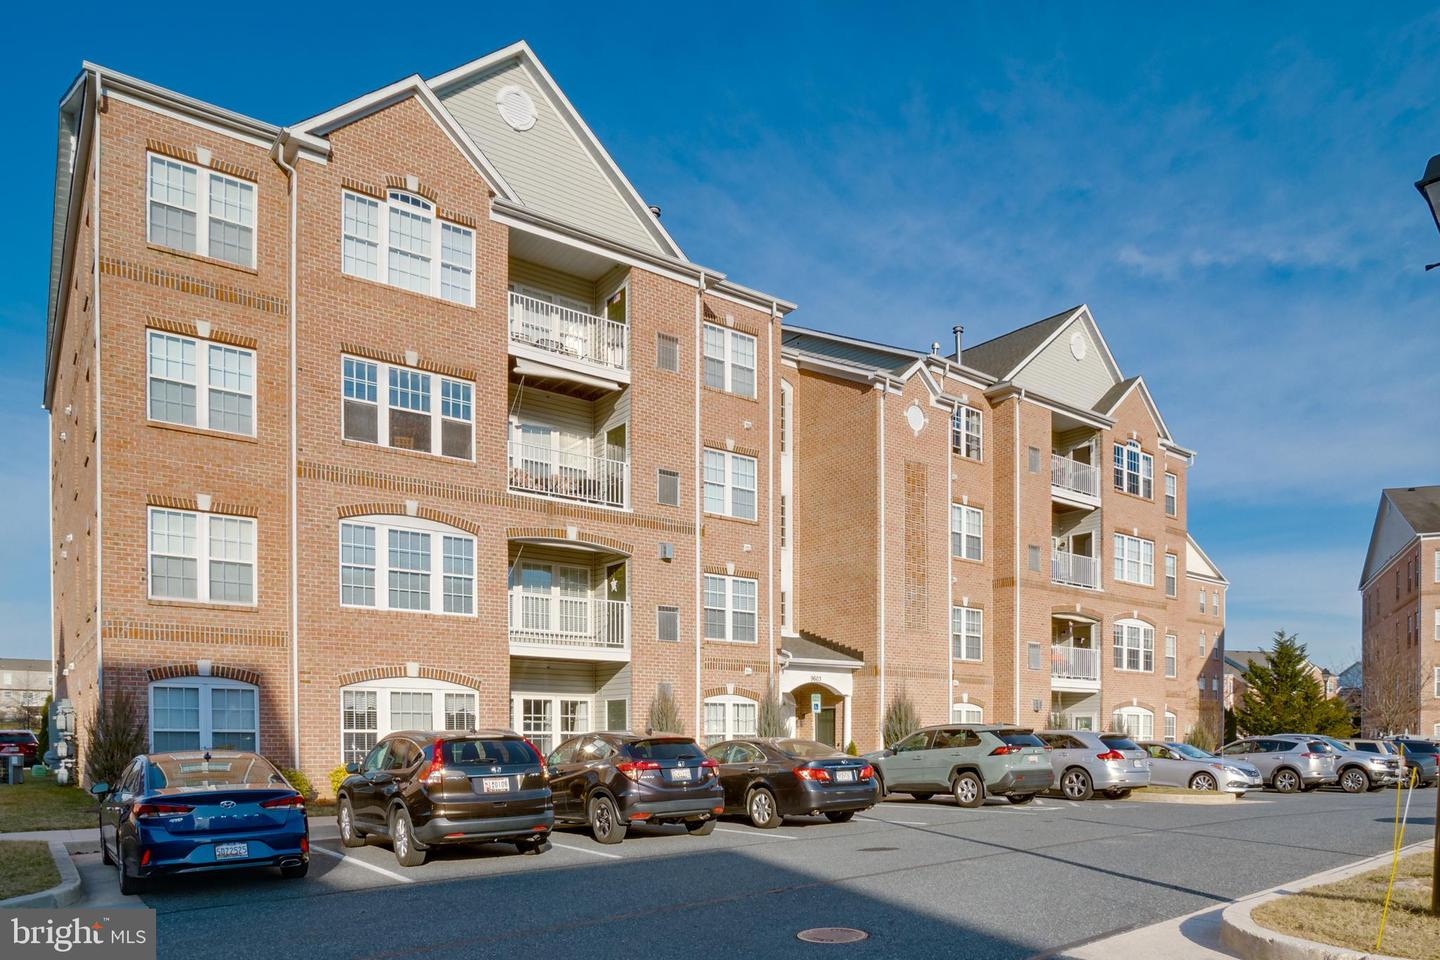 9603 AMBERLEIGH LN #M, PERRY HALL, Maryland 21128, 2 Bedrooms Bedrooms, ,2 BathroomsBathrooms,Common Interest,For Sale,9603 AMBERLEIGH LN #M,MDBC522592